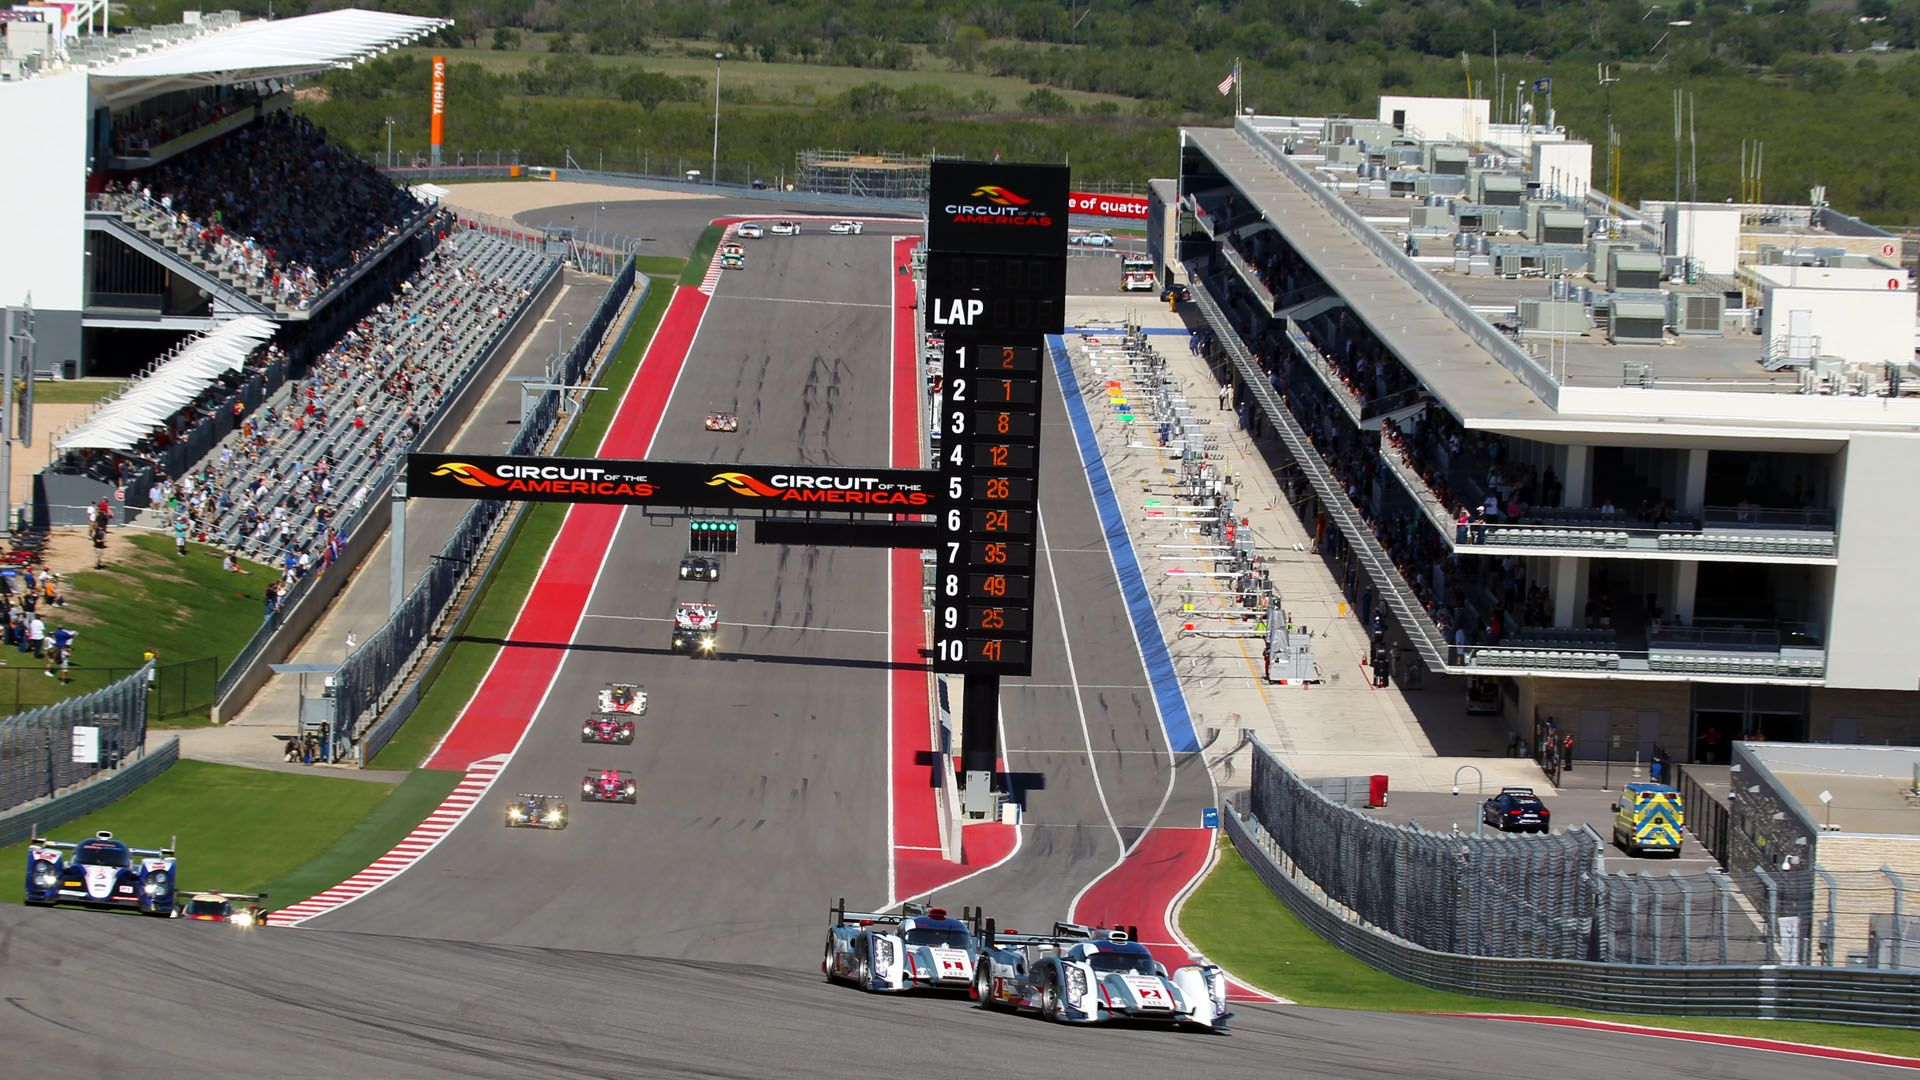 How to get more butts in seats at Circuit of the Americas